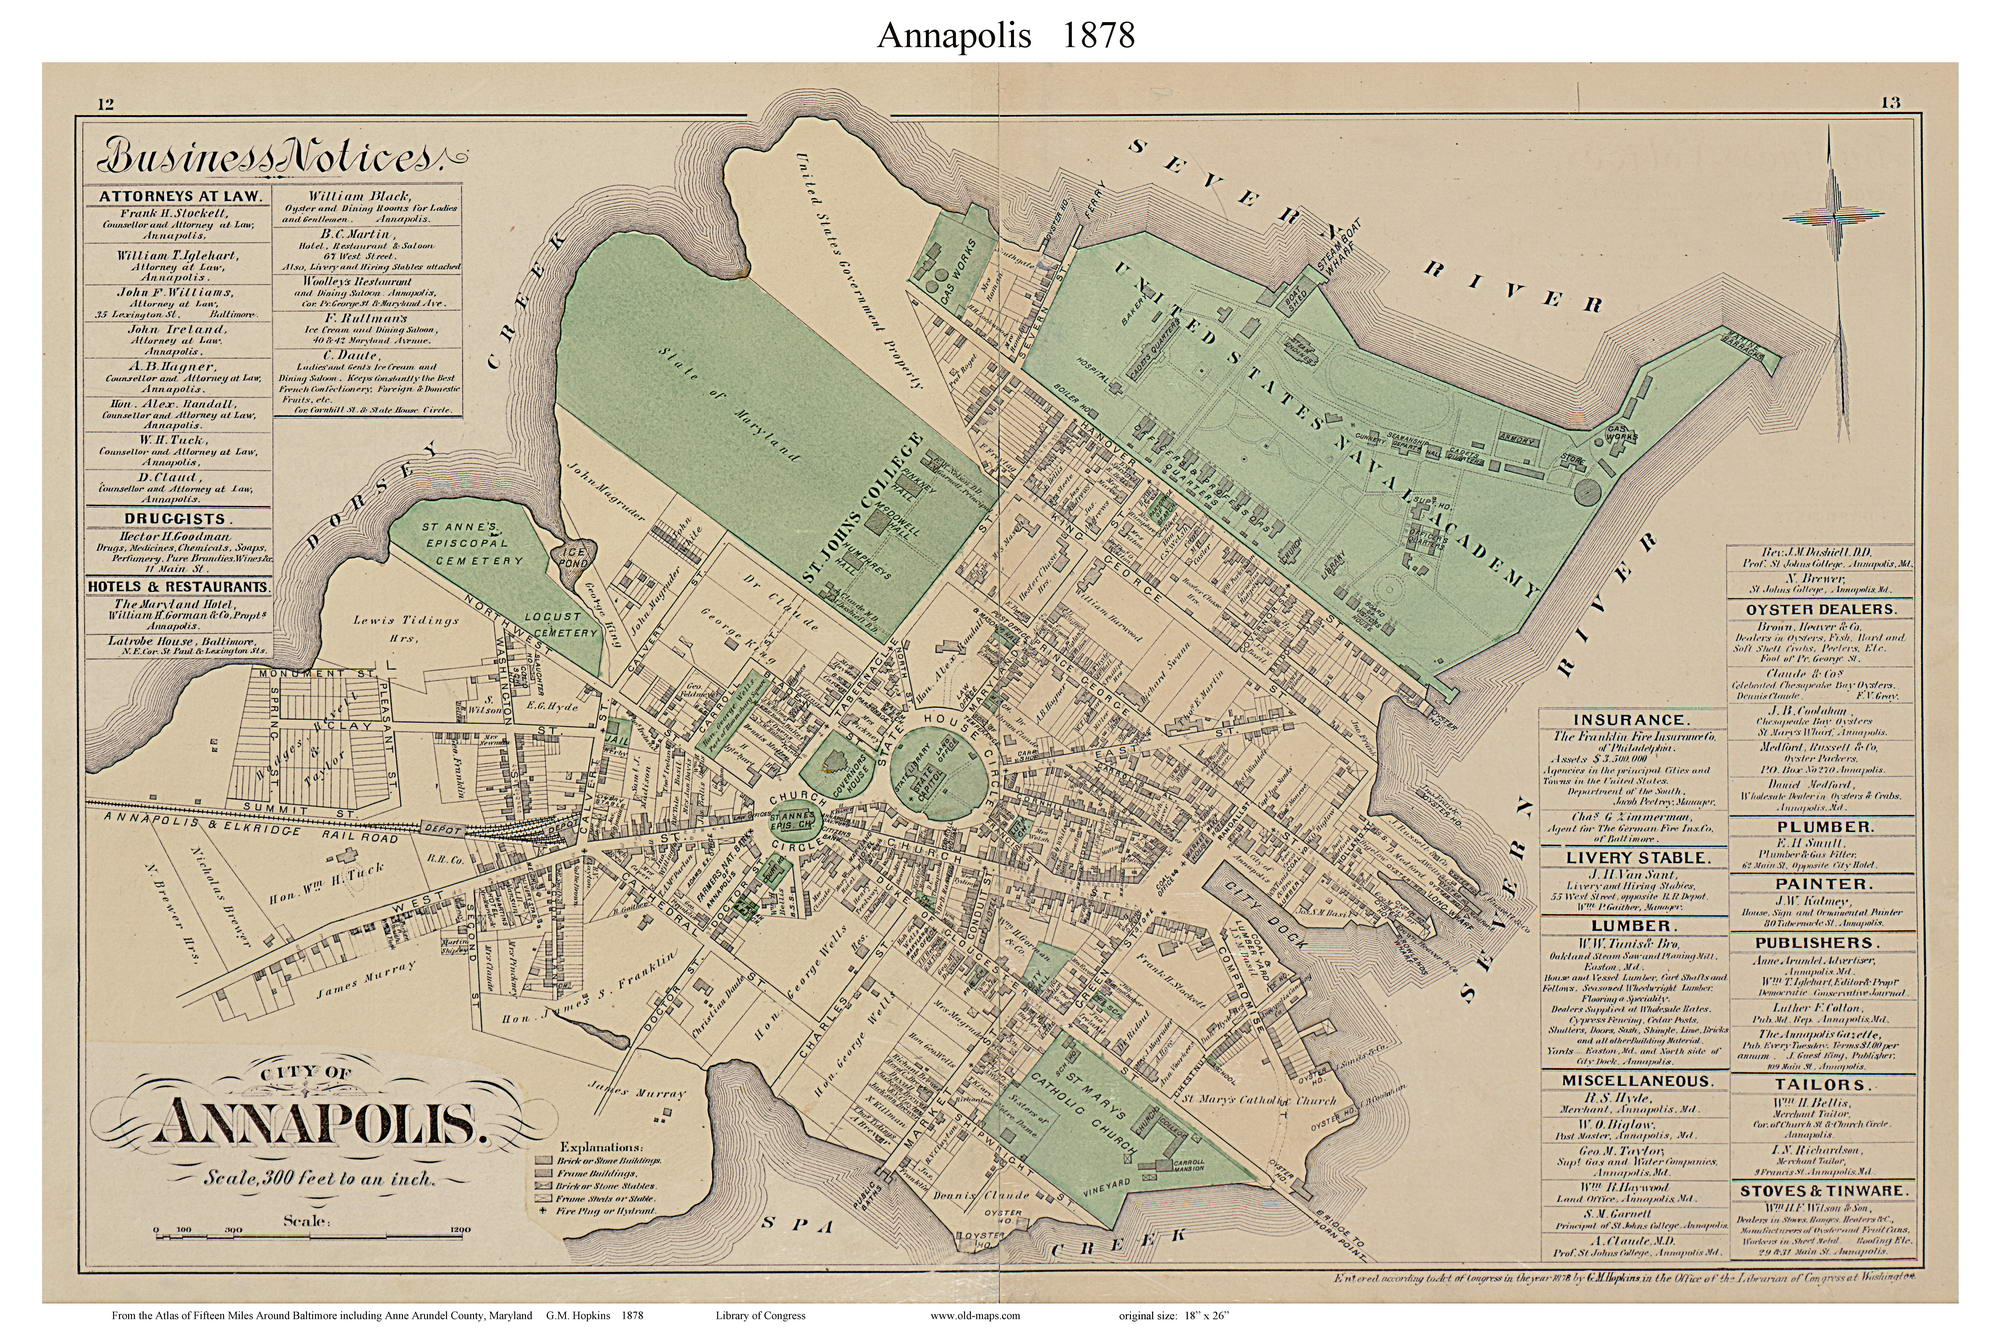 Annapolis City, Maryland 1878 Old Map Reprint - Anne Arundel Co. on map of kennedyville md, map of hughesville md, map of garrett park md, map of mitchellville md, map of delmarva md, map of kitzmiller md, map of tilghman island md, map of deep creek lake md, map of forestville md, map of ft washington md, map of millington md, map of arnold md, map va md, map of naval academy, map of edgewood arsenal md, map of the eastern shore md, map of queen anne's county md, map of accident md, map of fruitland md, map of taylors island md,